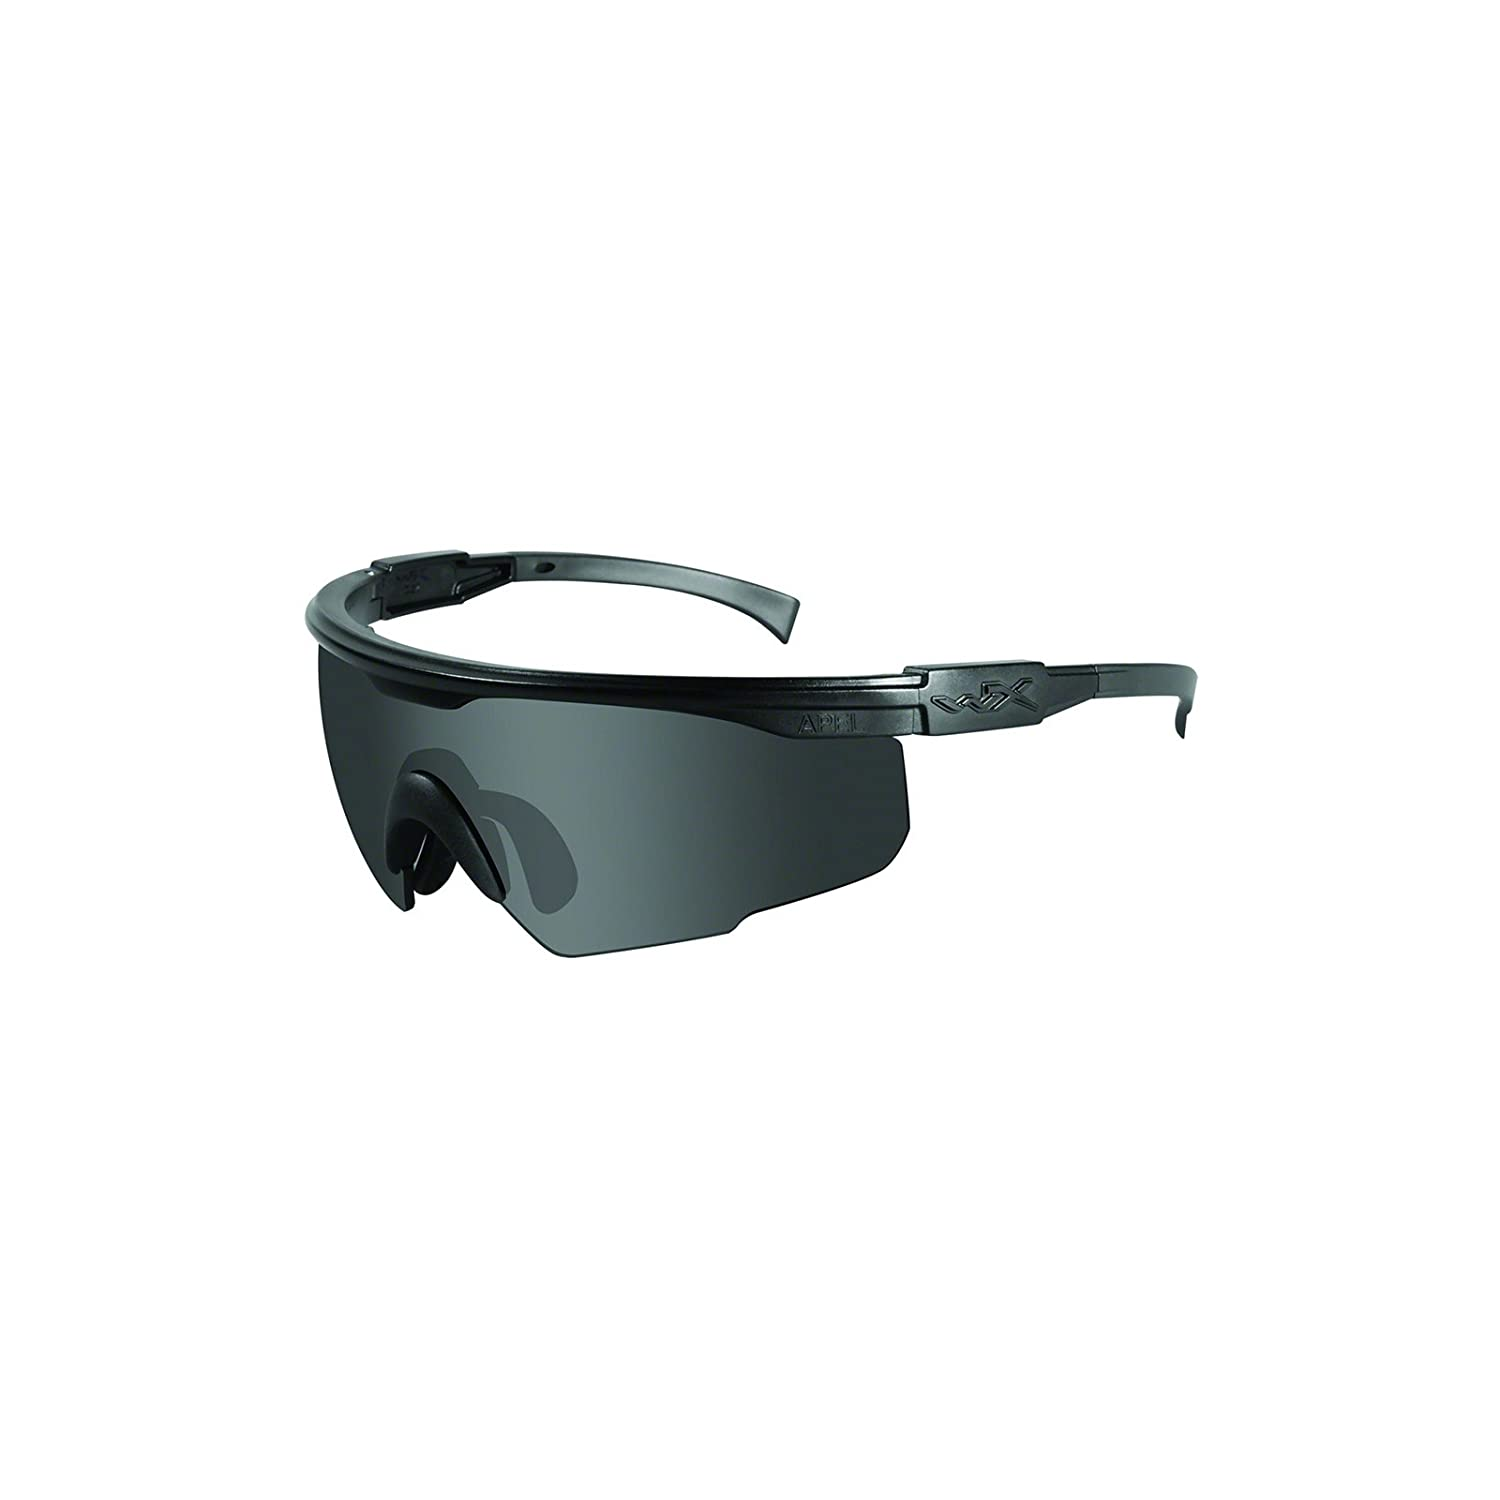 4689b3c241f Amazon.com  Wiley X PT-1 PT-1S Changeable Sunglasses Grey Lens   Matte  Black Frame  Sports   Outdoors